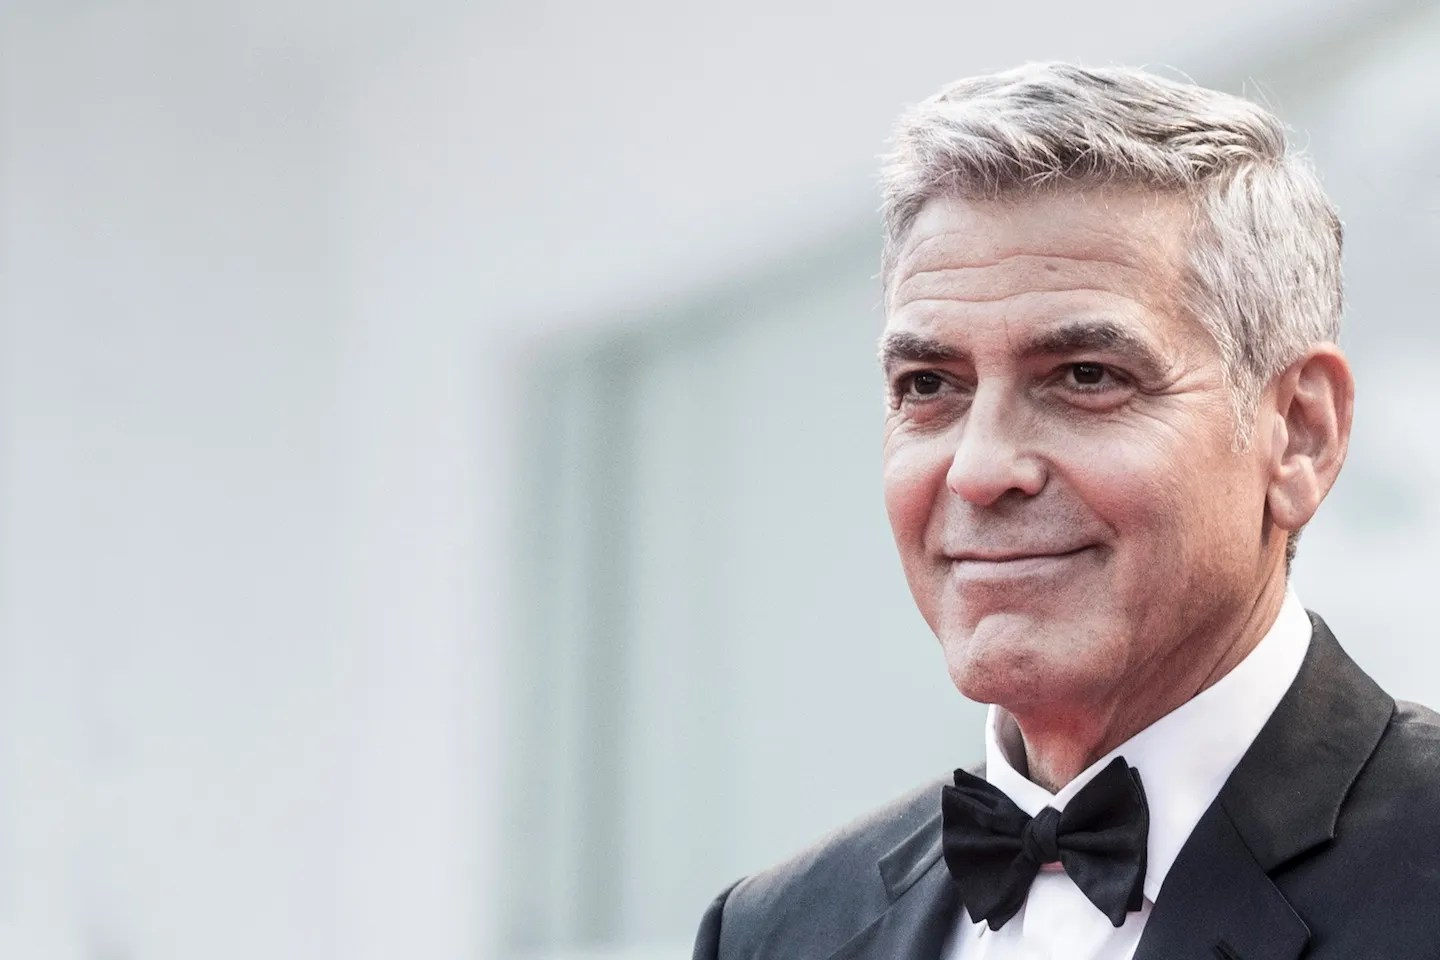 George Clooney s Scathing Review of Steve Bannon   Vanity Fair